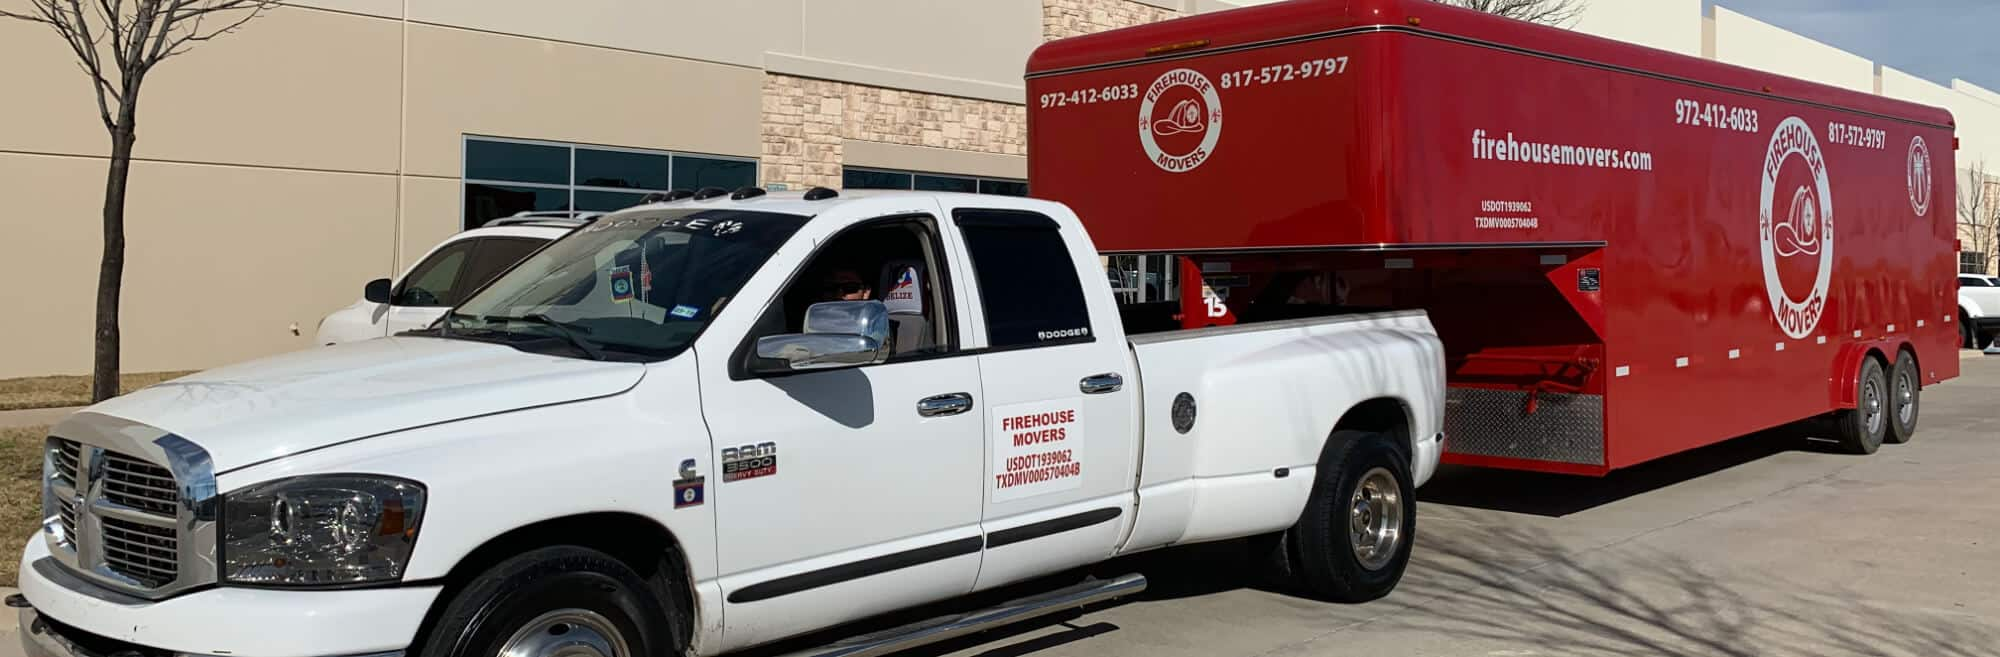 Firehouse Movers Texas Moving Company